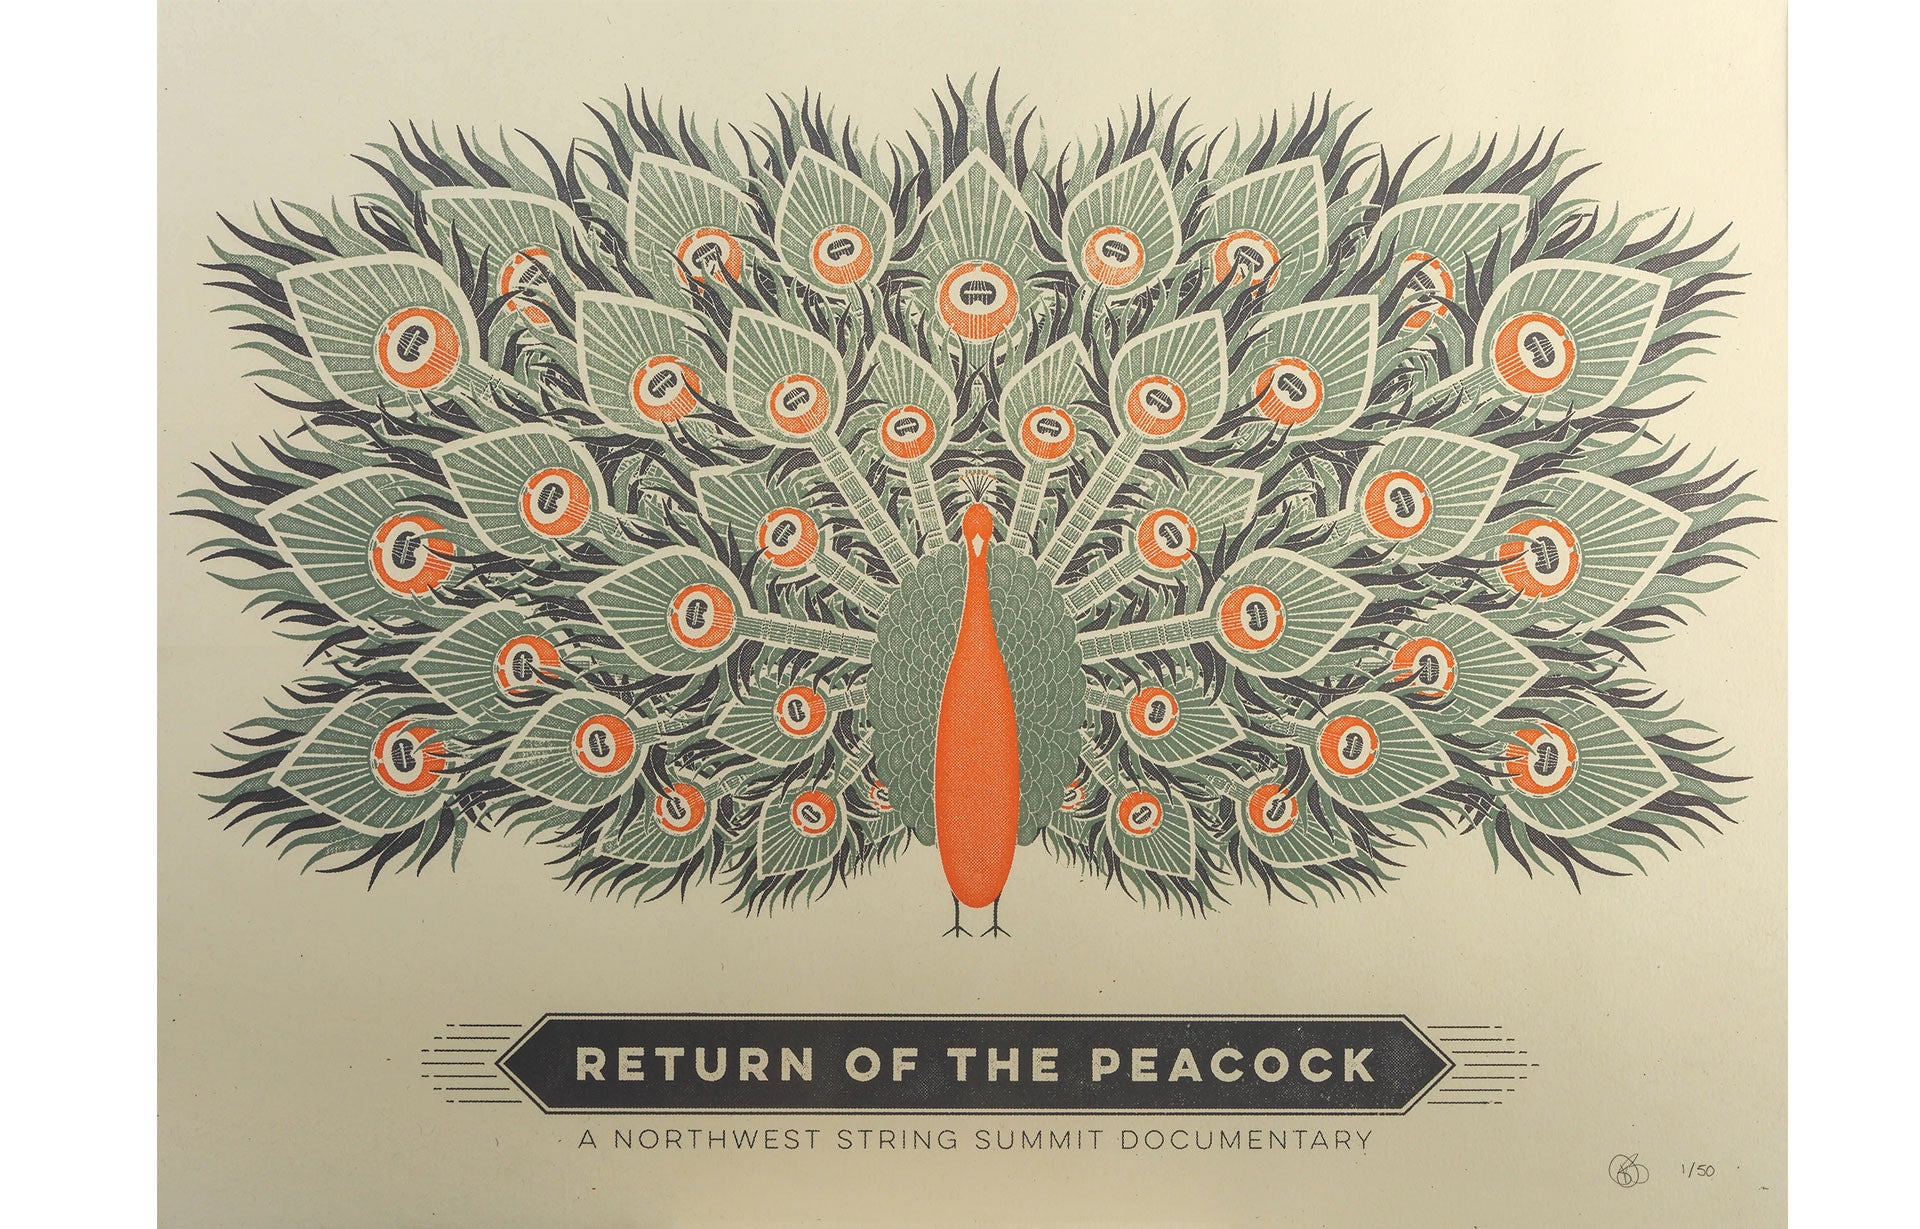 Return of the Peacock Screen Prints